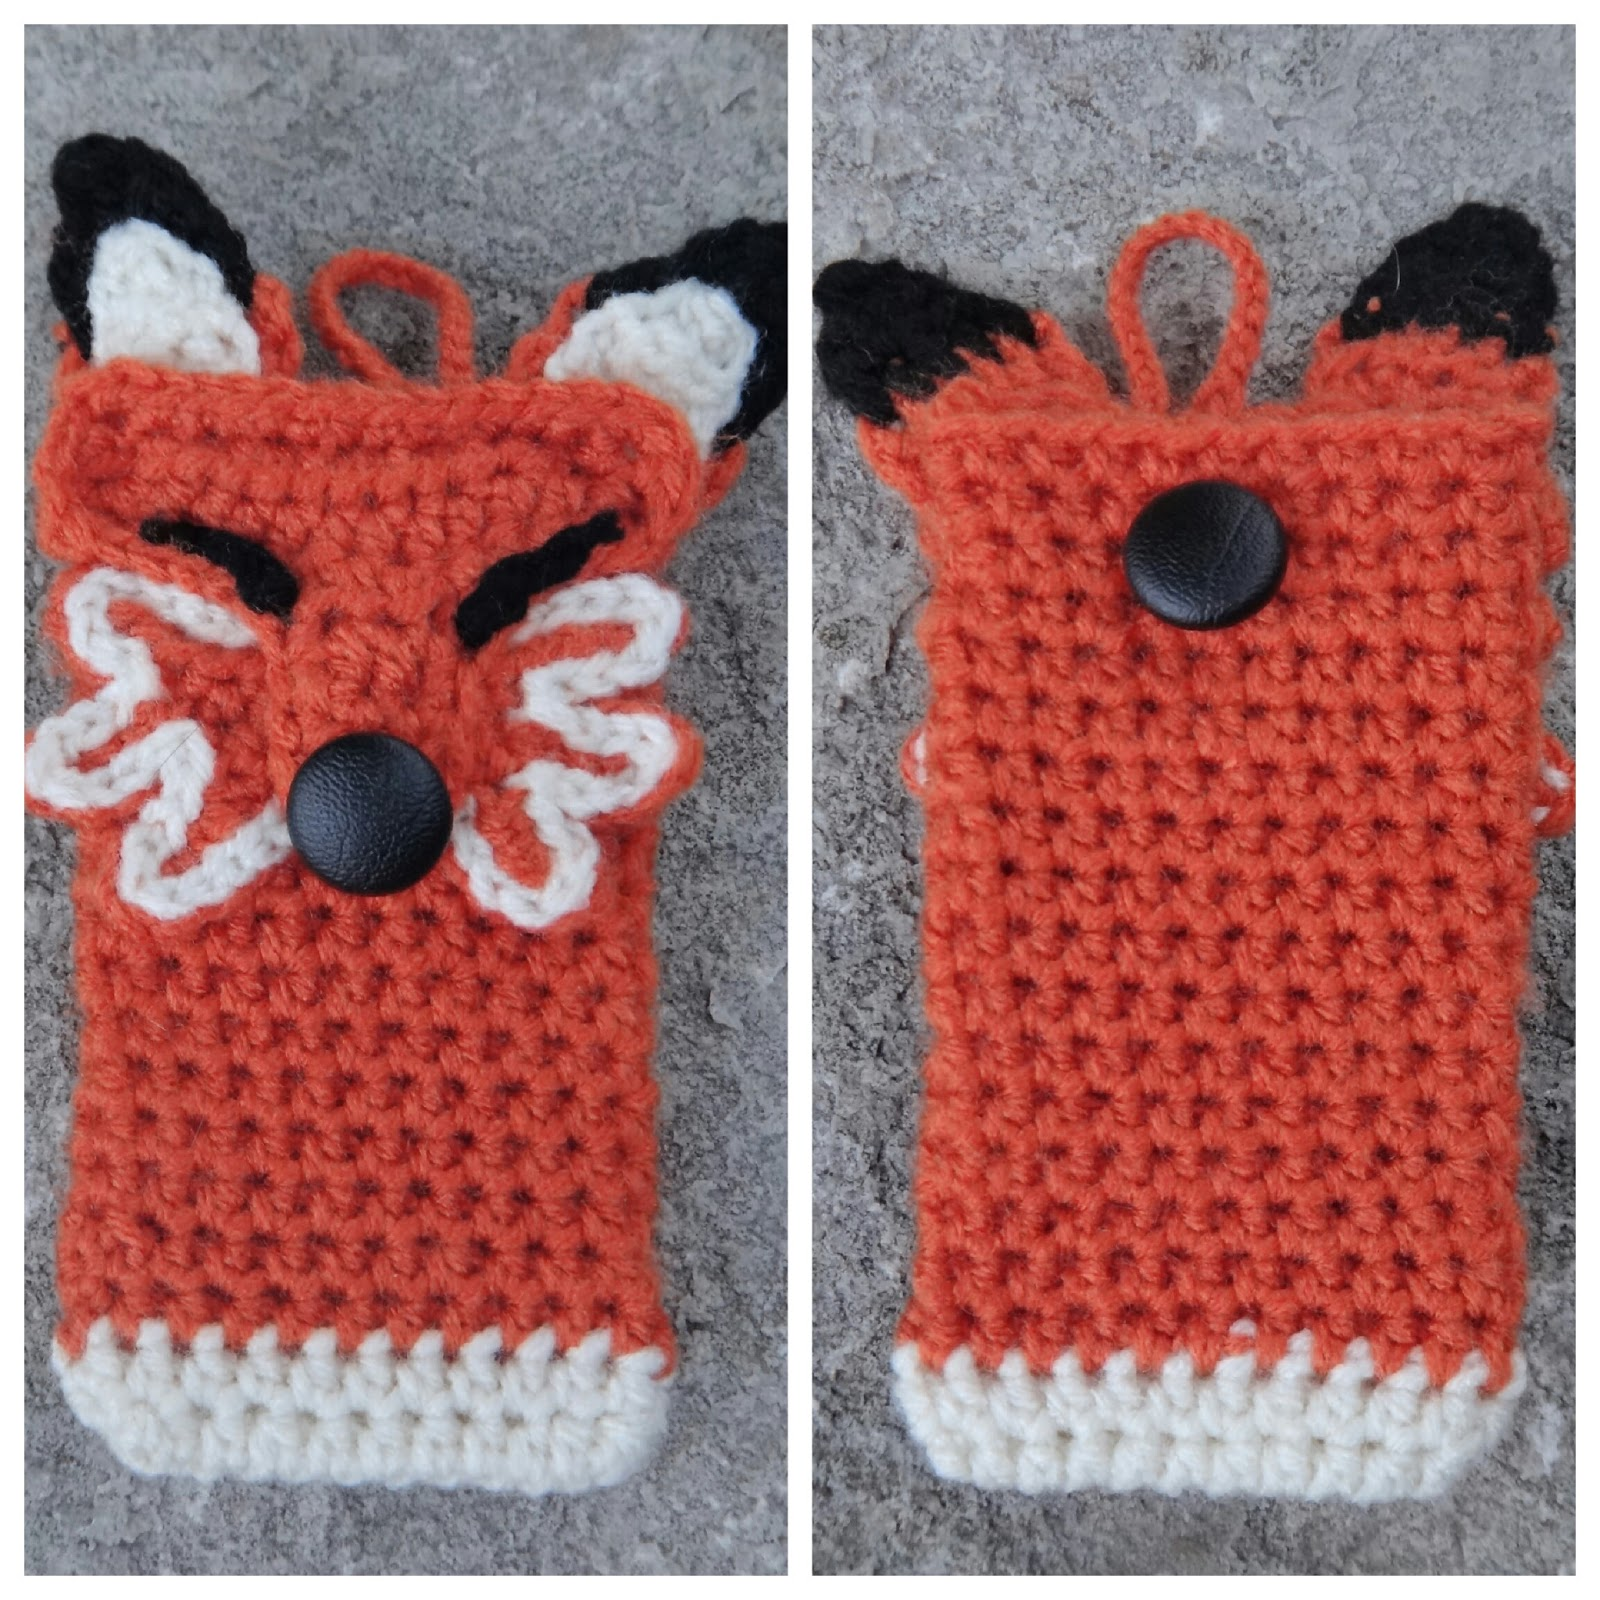 Free Crochet Pattern For I Phone Case : Grandma Swills Handcrafted Knits: Handmade Crocheted ...